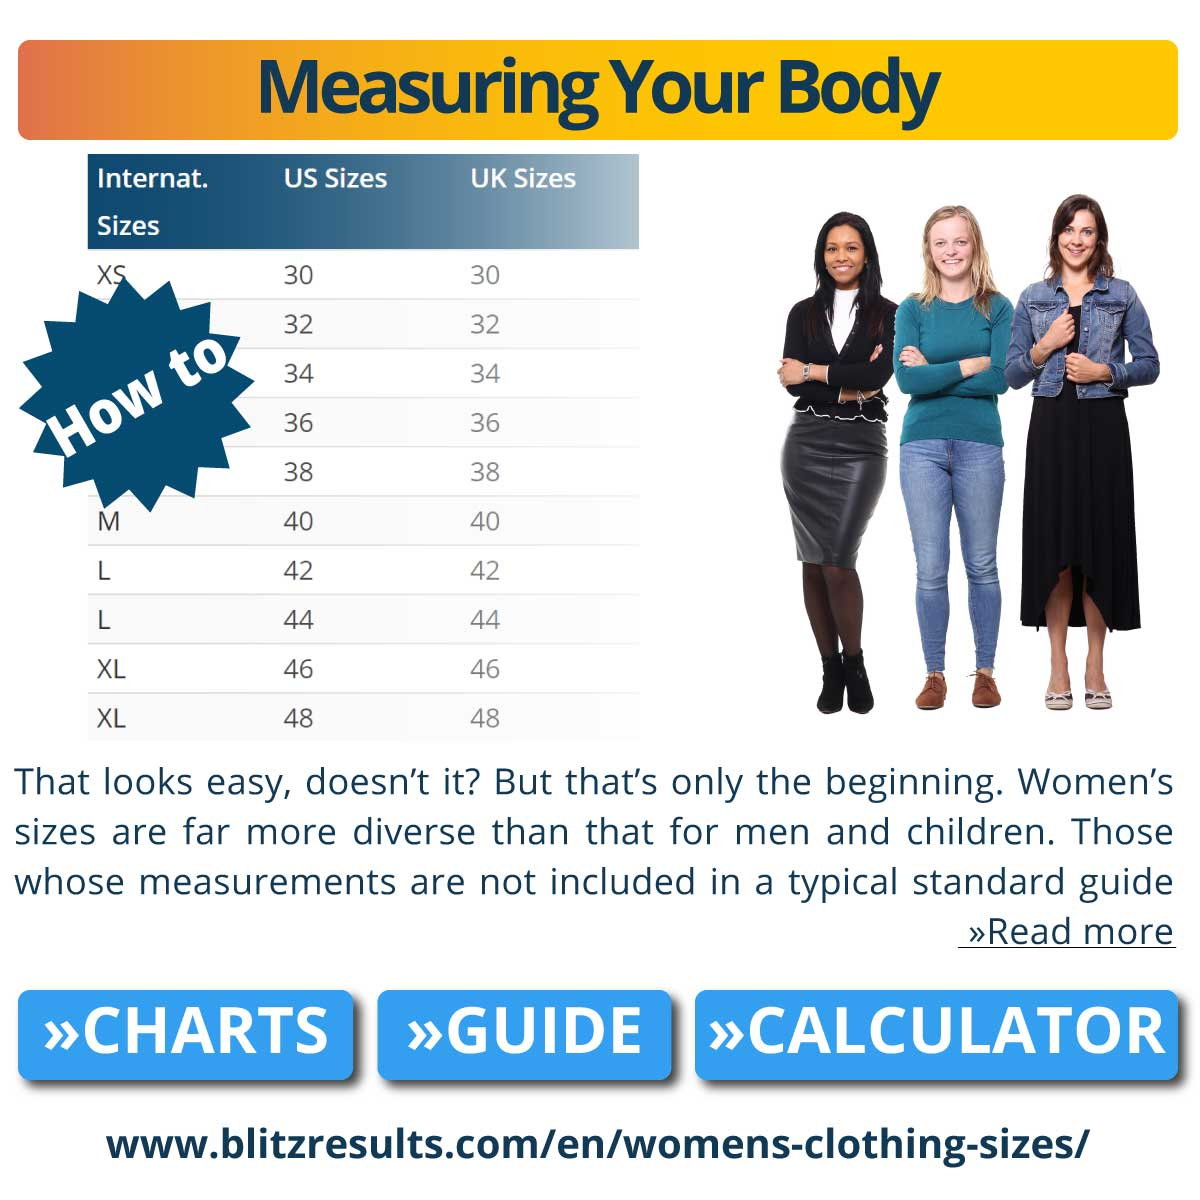 Measuring Your Body